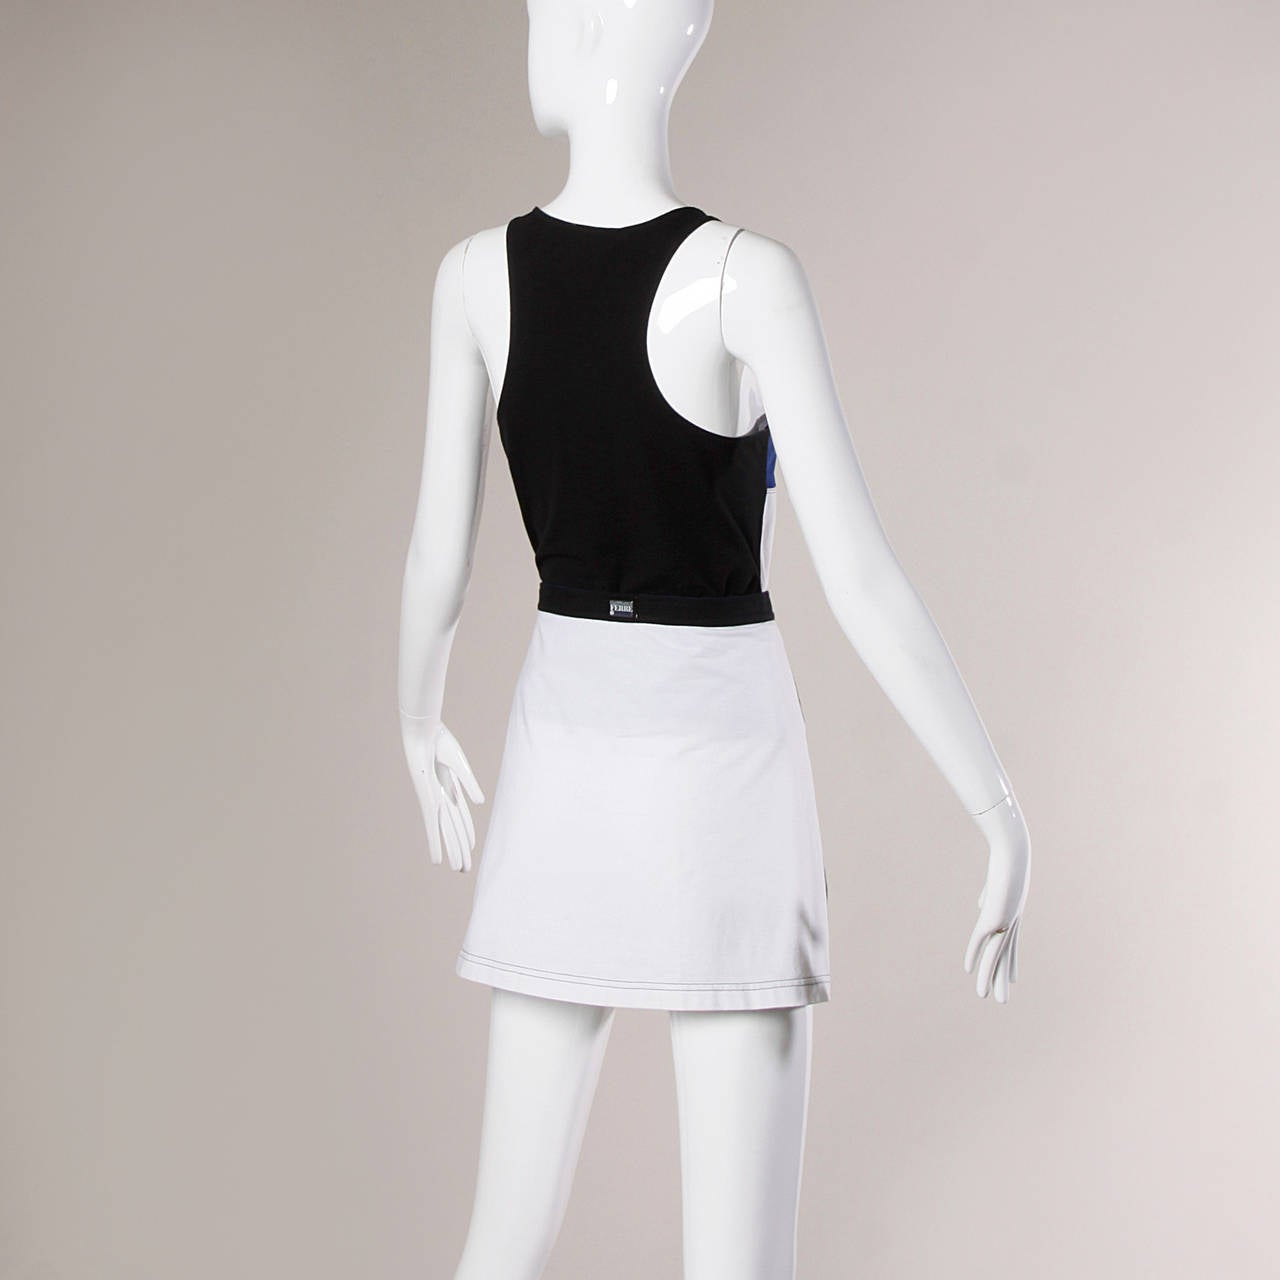 Gianfranco Ferre Vintage Sporty Color Block 2-Piece Skirt + Top Ensemble 4